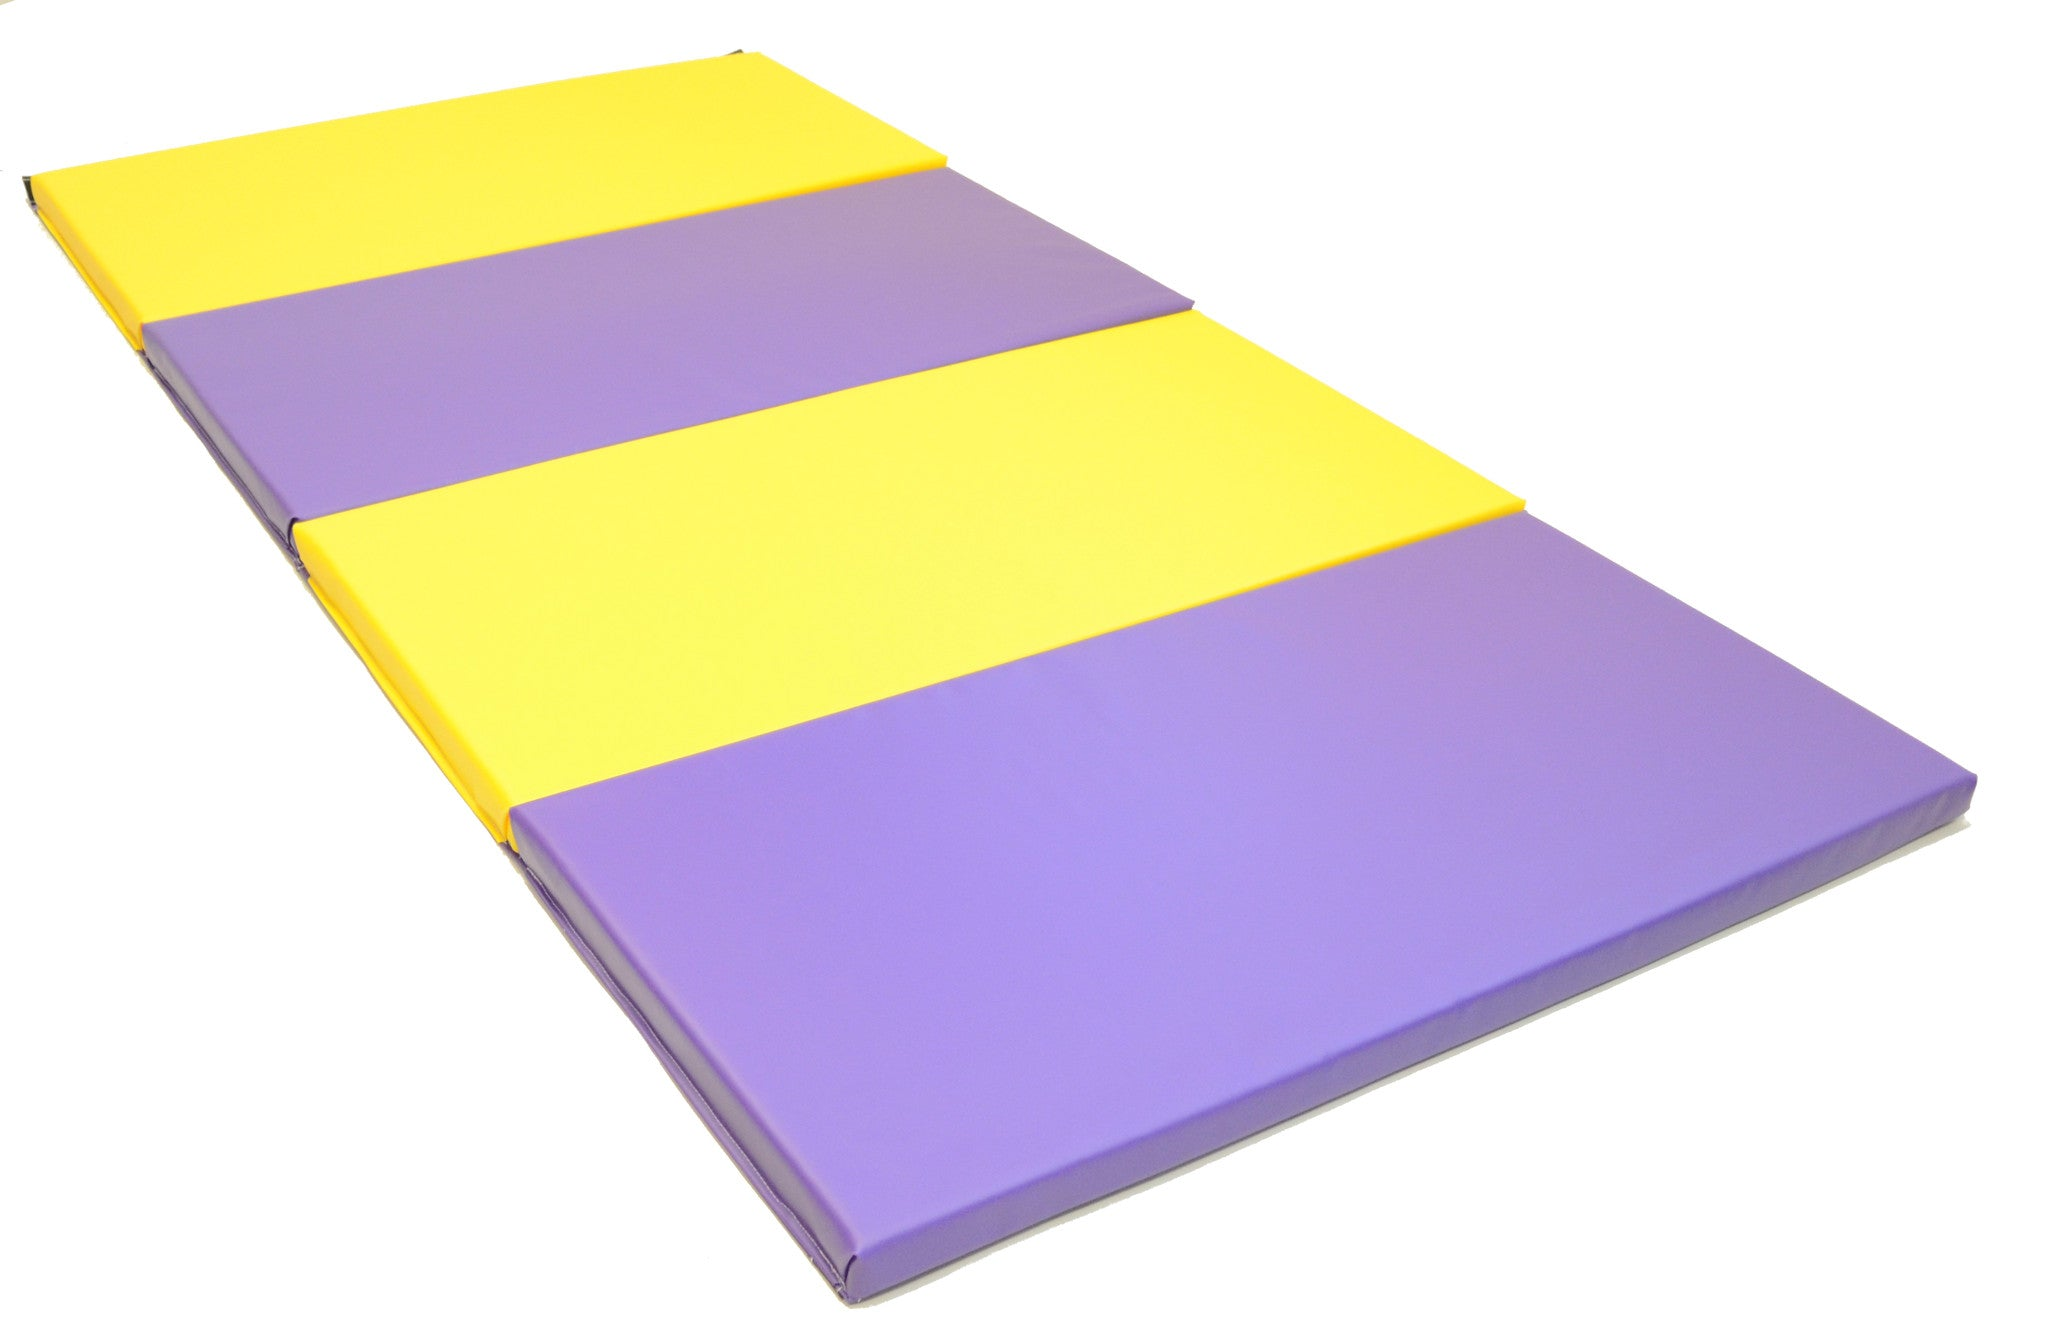 "SALE! Purple and Yellow 4' x 8' x 2"" Folding Gymnastics Mat  Intermediate Level"